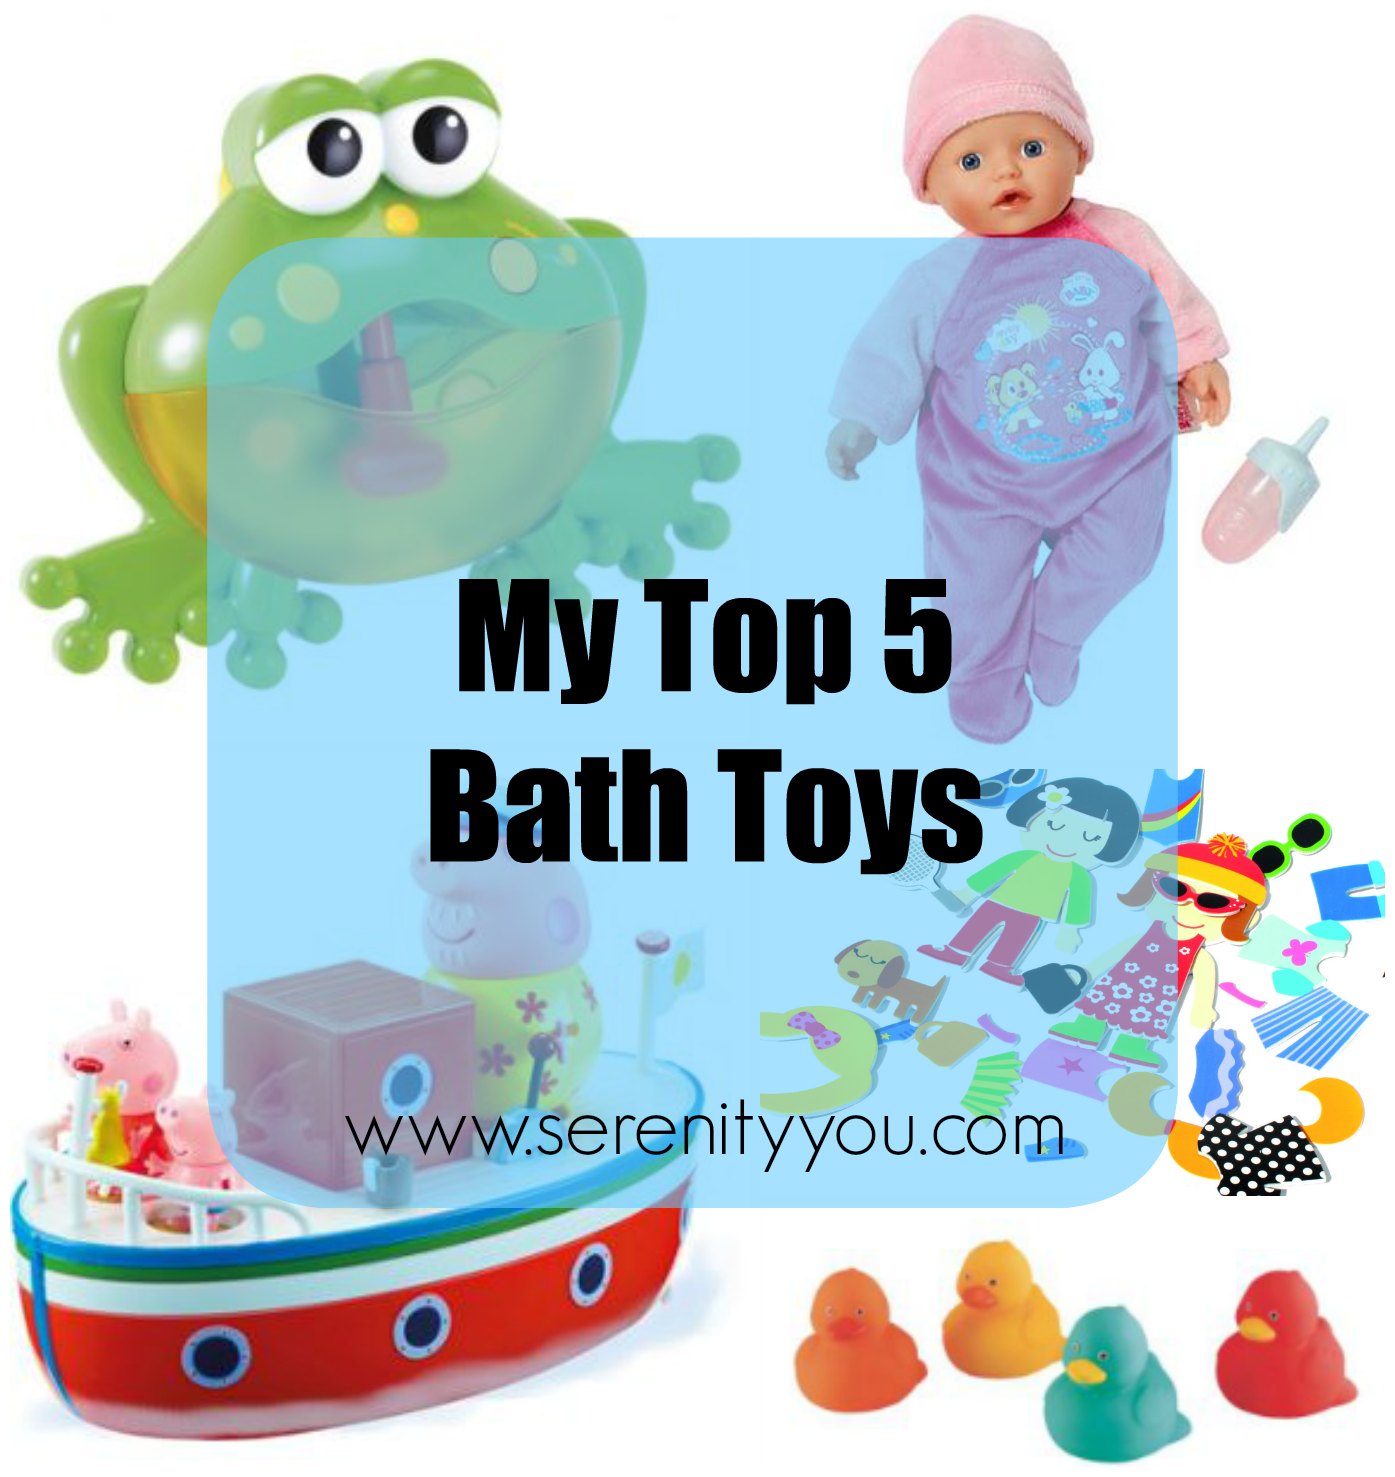 My Top 5 Bath Toys | Bath toys and Toy